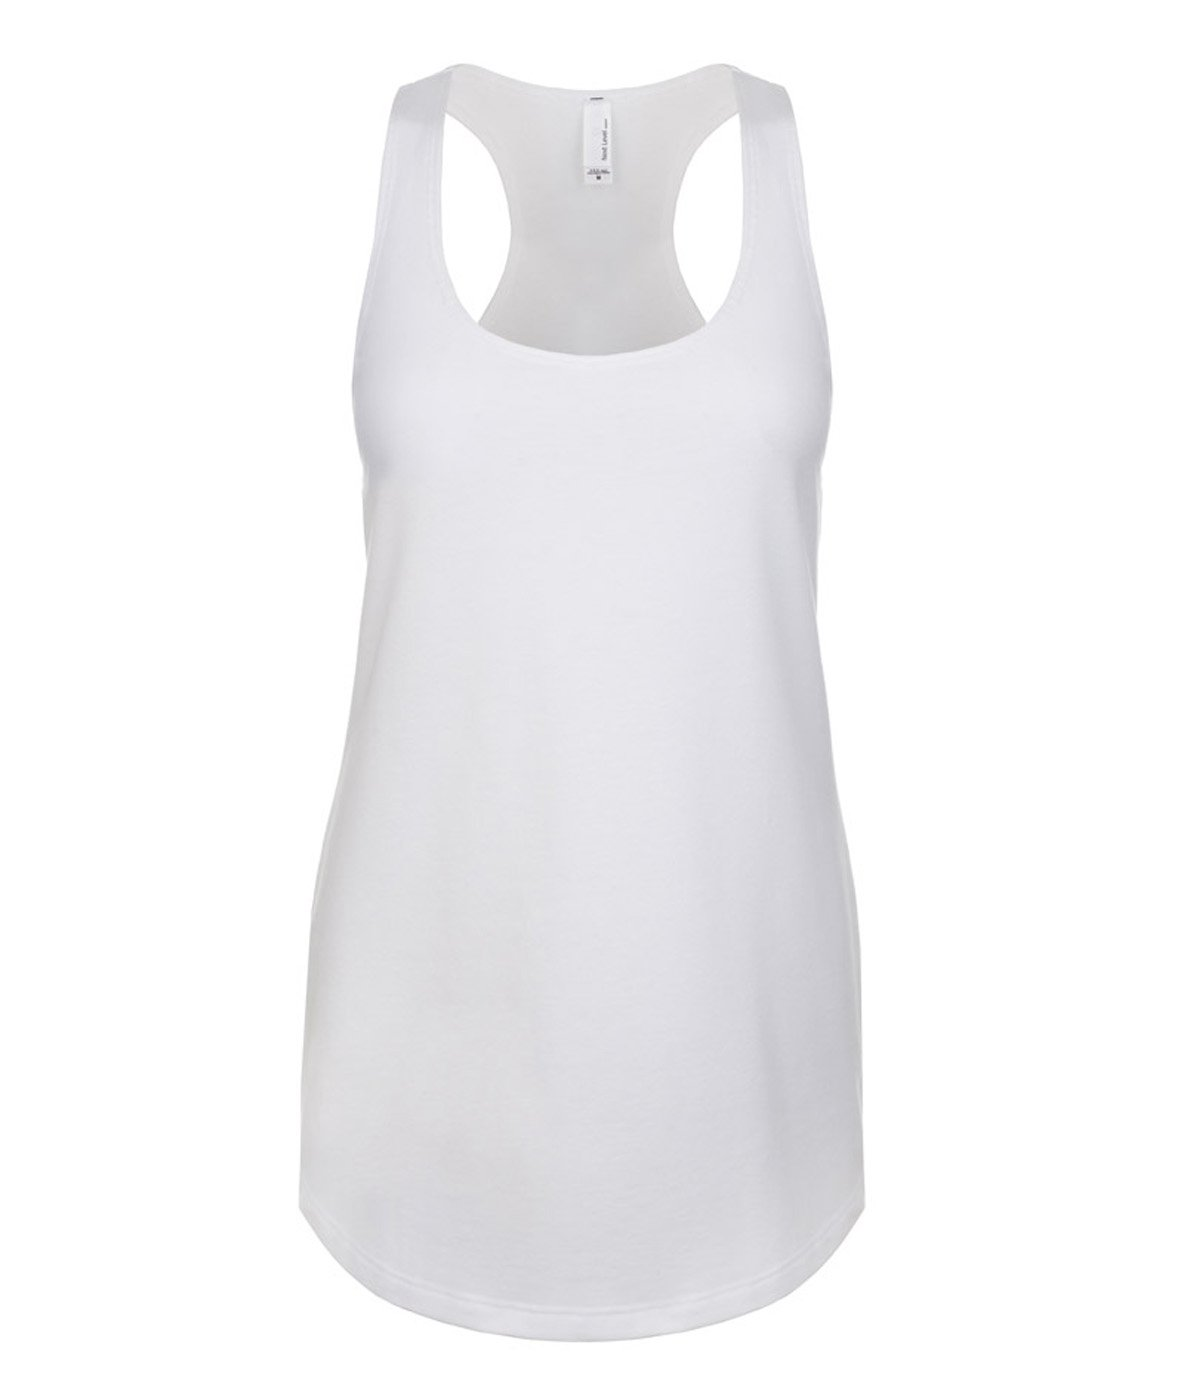 Next Level Ideal Racerback Tank White Large (Pack of 5)